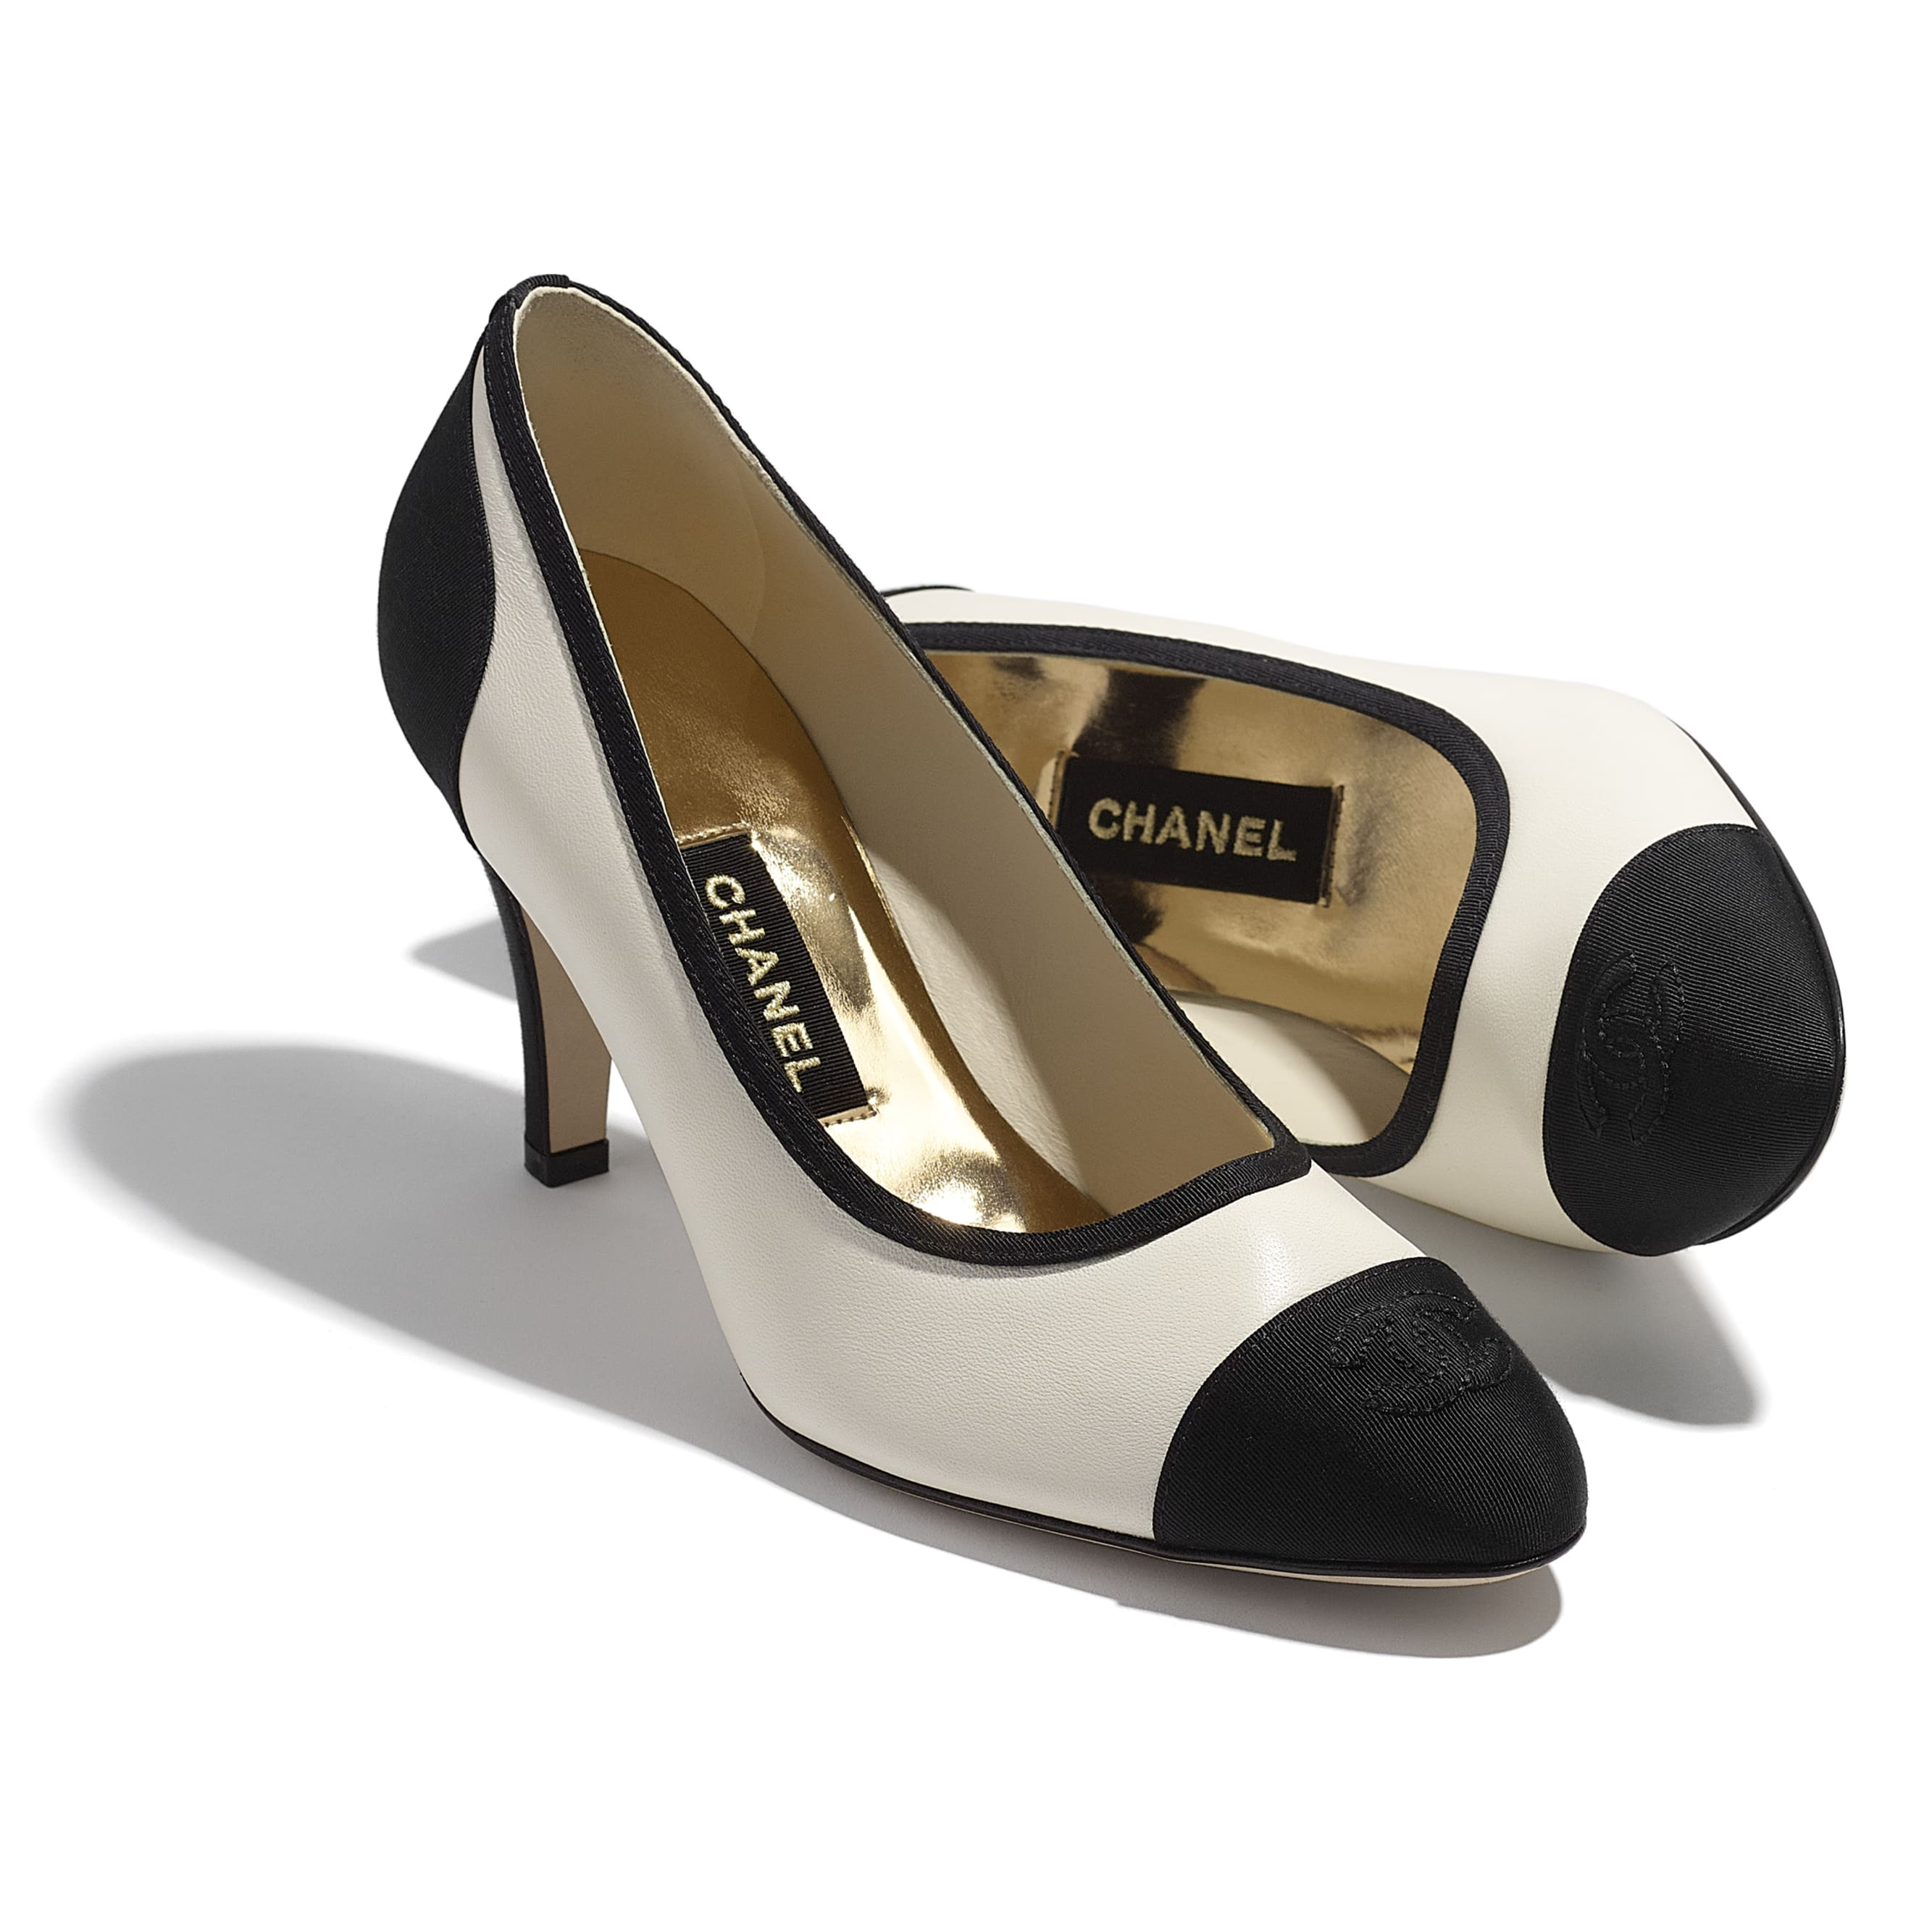 Pumps - Ivory & Black - Lambskin & Grosgrain - CHANEL - Extra view - see standard sized version